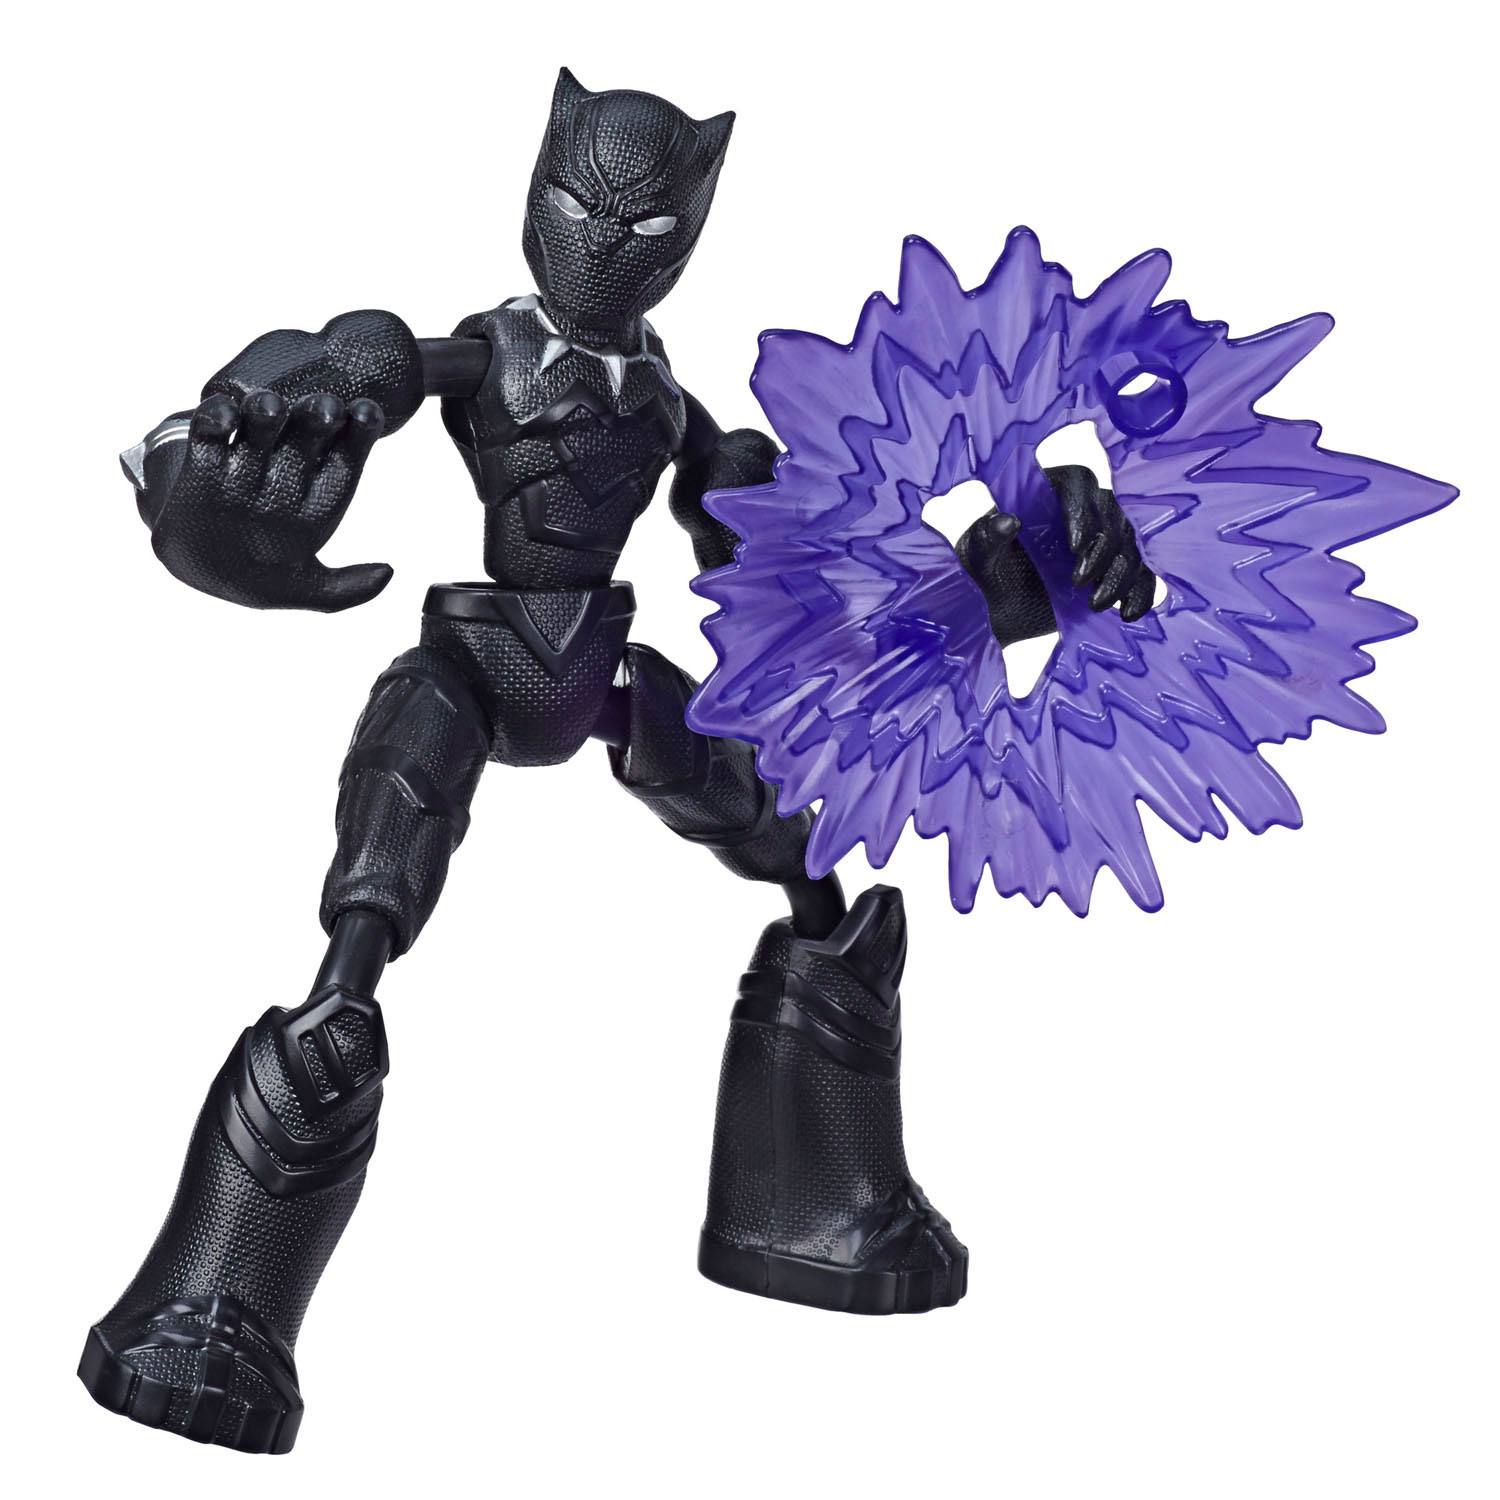 Flexibel Actiefiguur - Avengers Black Panther